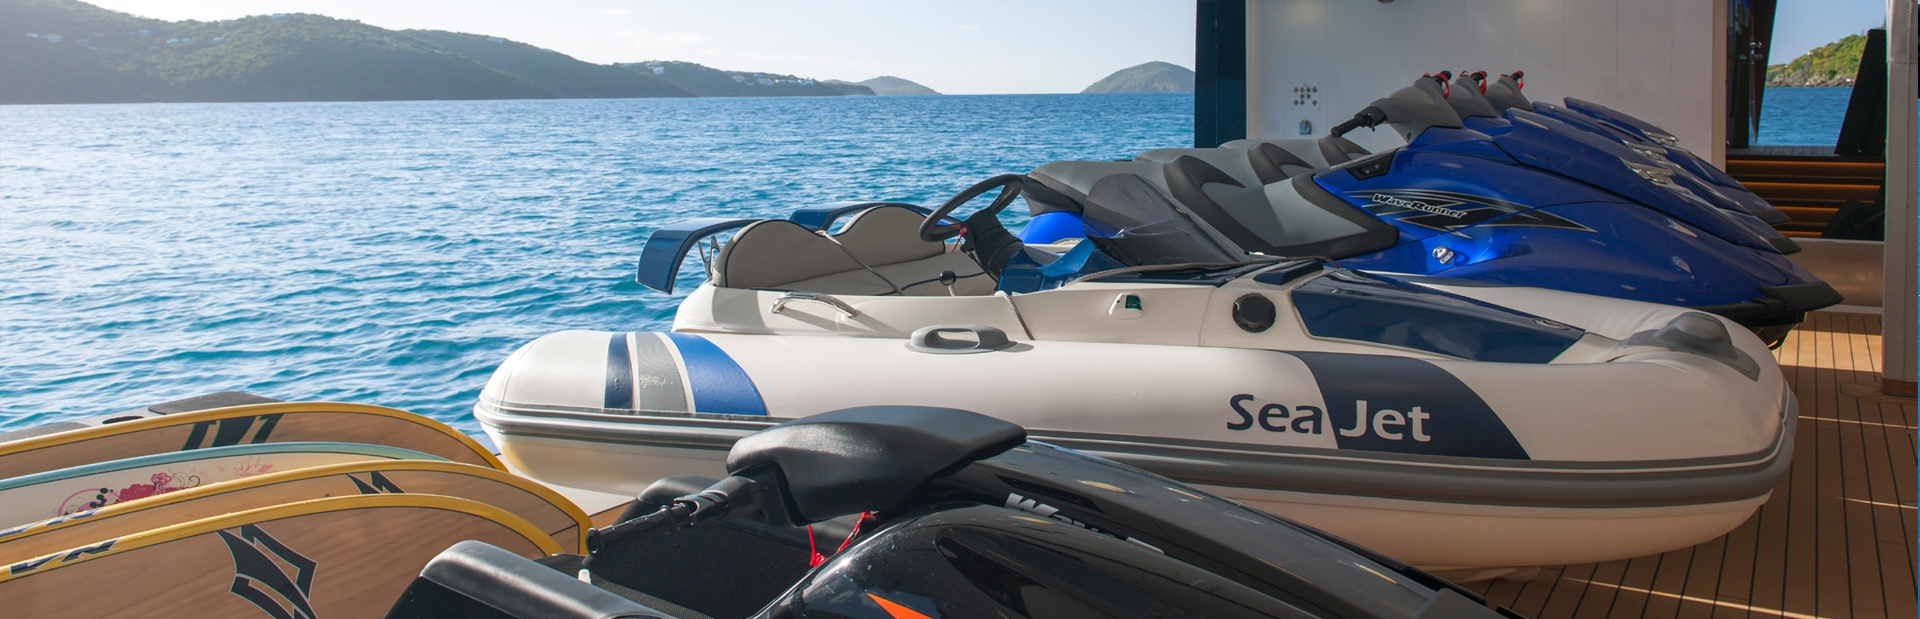 Charter toys ready to be sued on the yacht Solandge